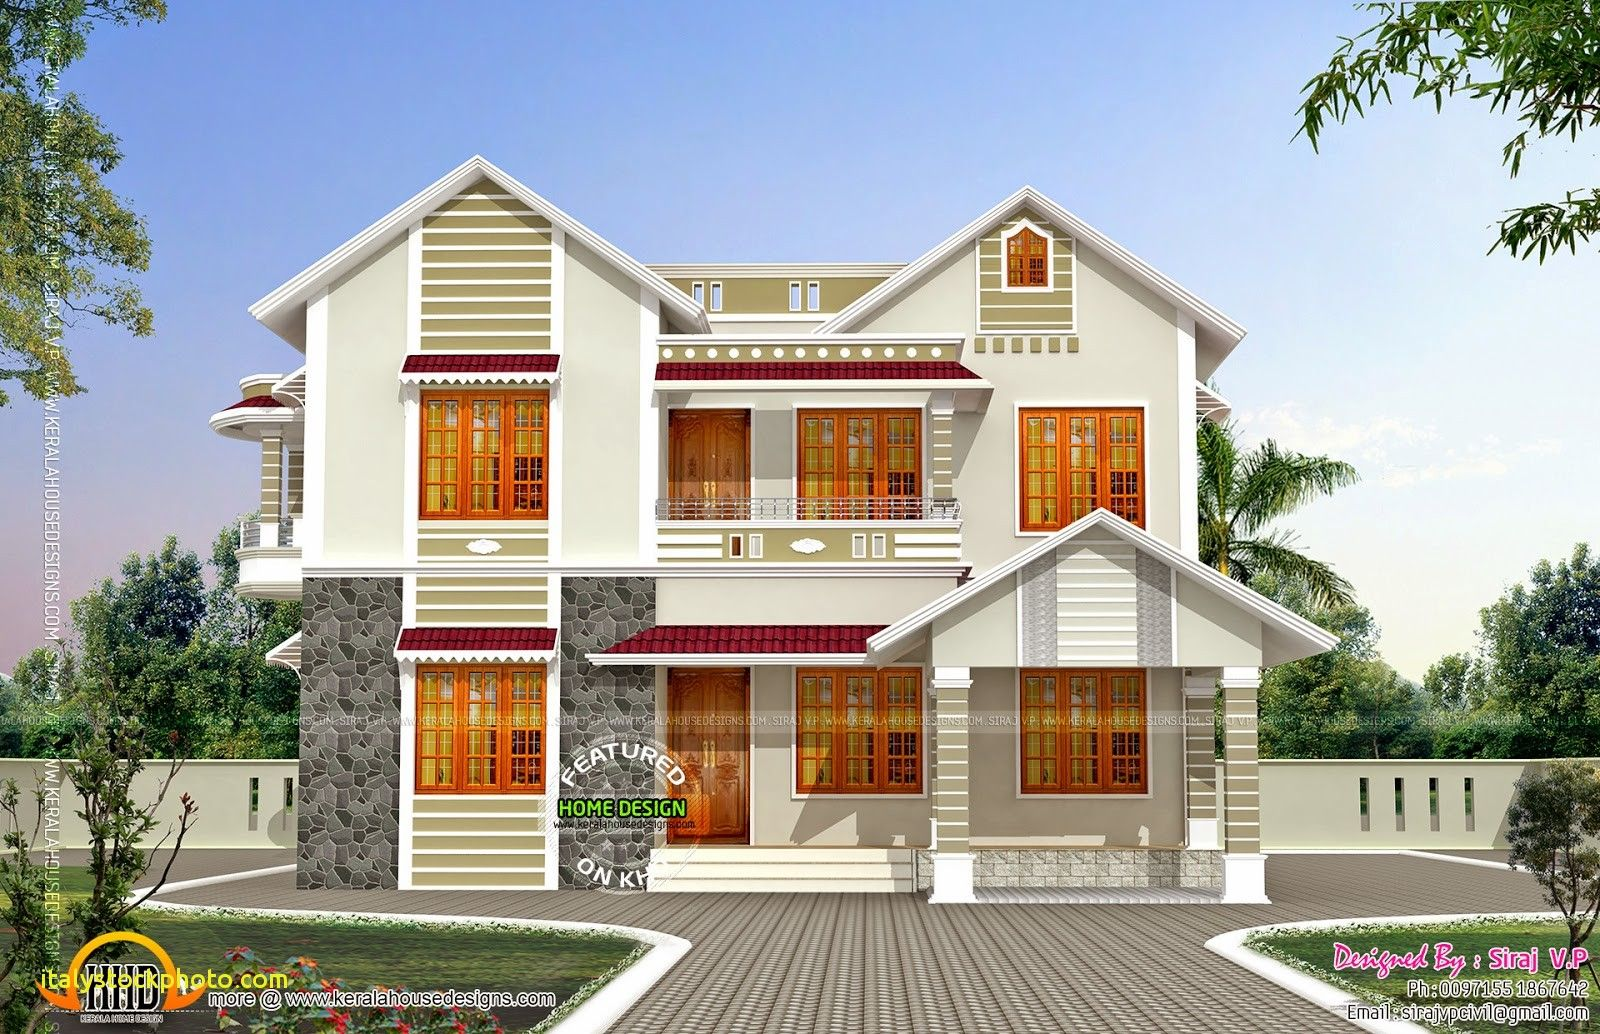 Modern house front view design house for rent near me housedesign housedesigns modernhousedesign modernhouse interiordesign frontelevation